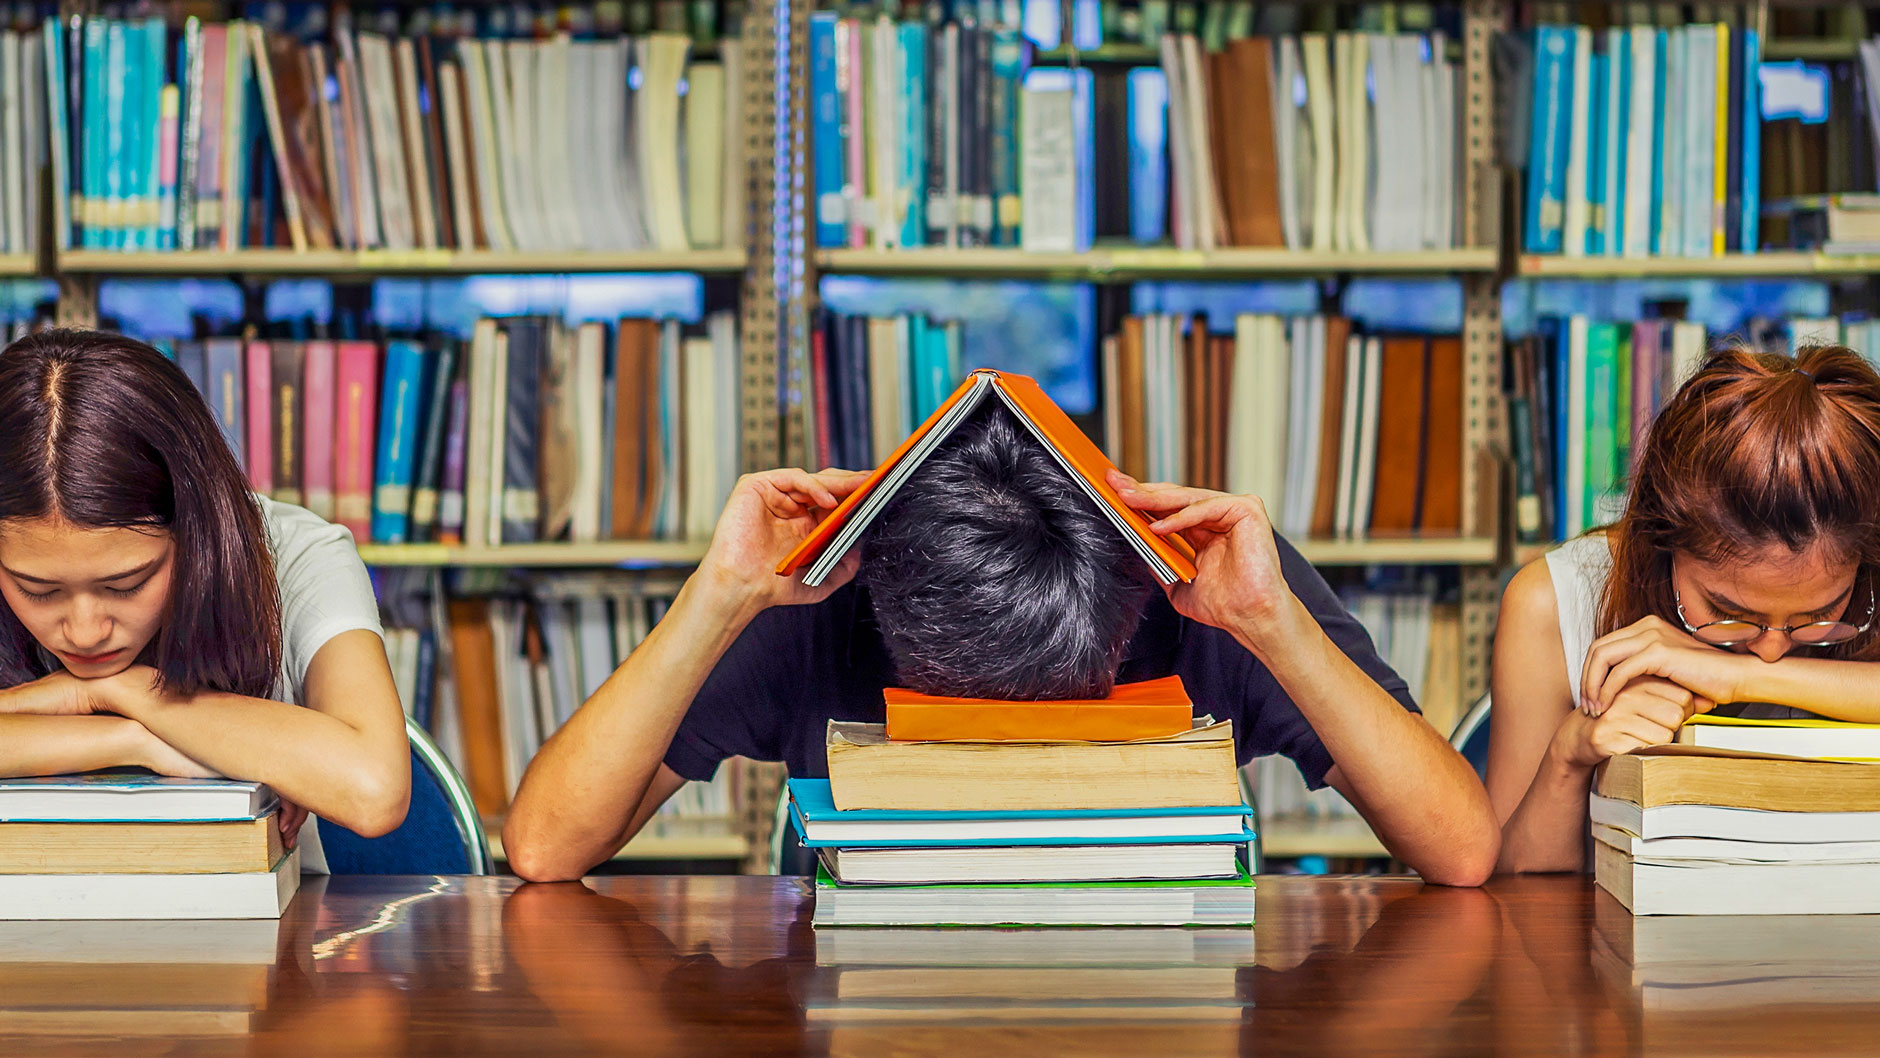 Students in library with study fatigue